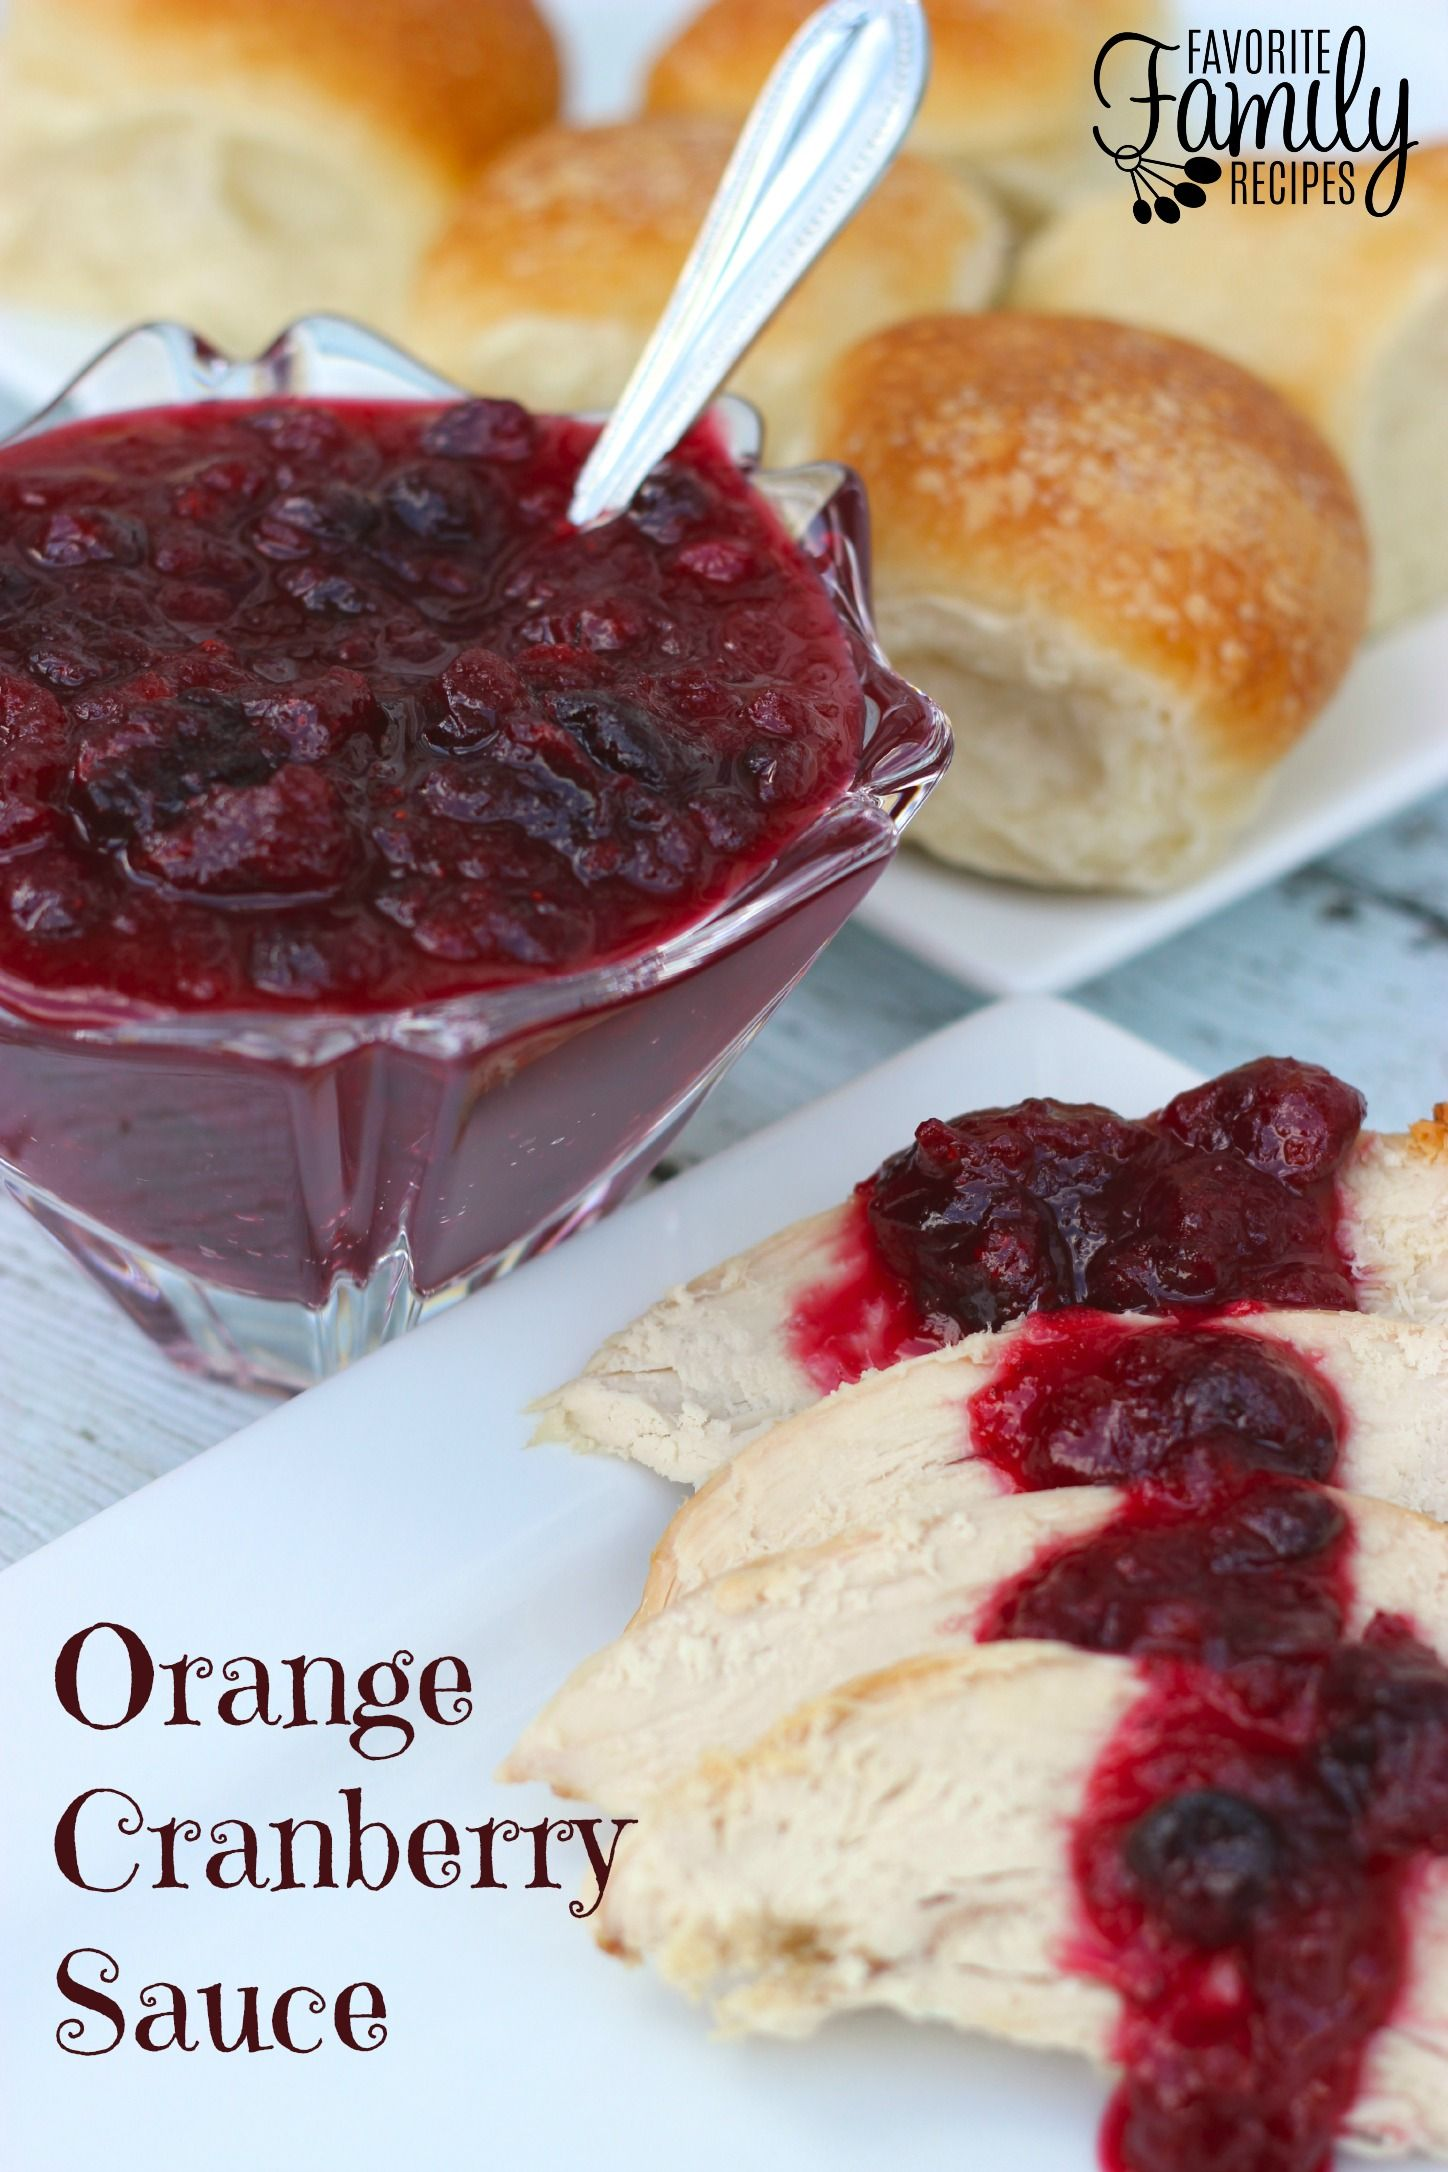 Orange Cranberry Sauce - perfect for Thanksgiving!